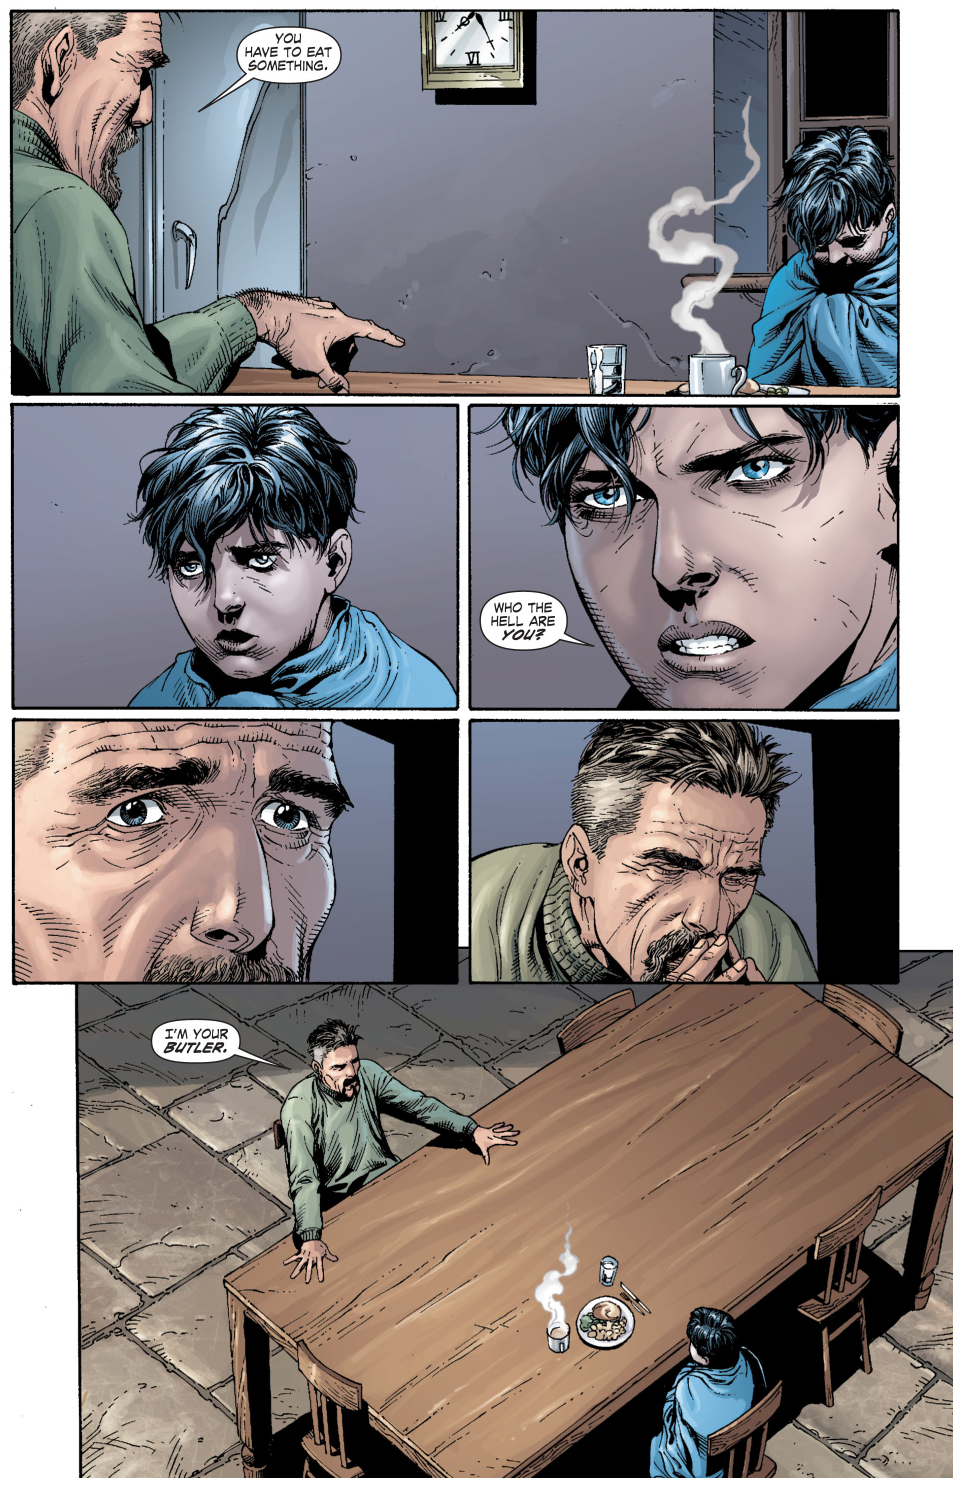 alfred pennyworth becomes bruce's guardian